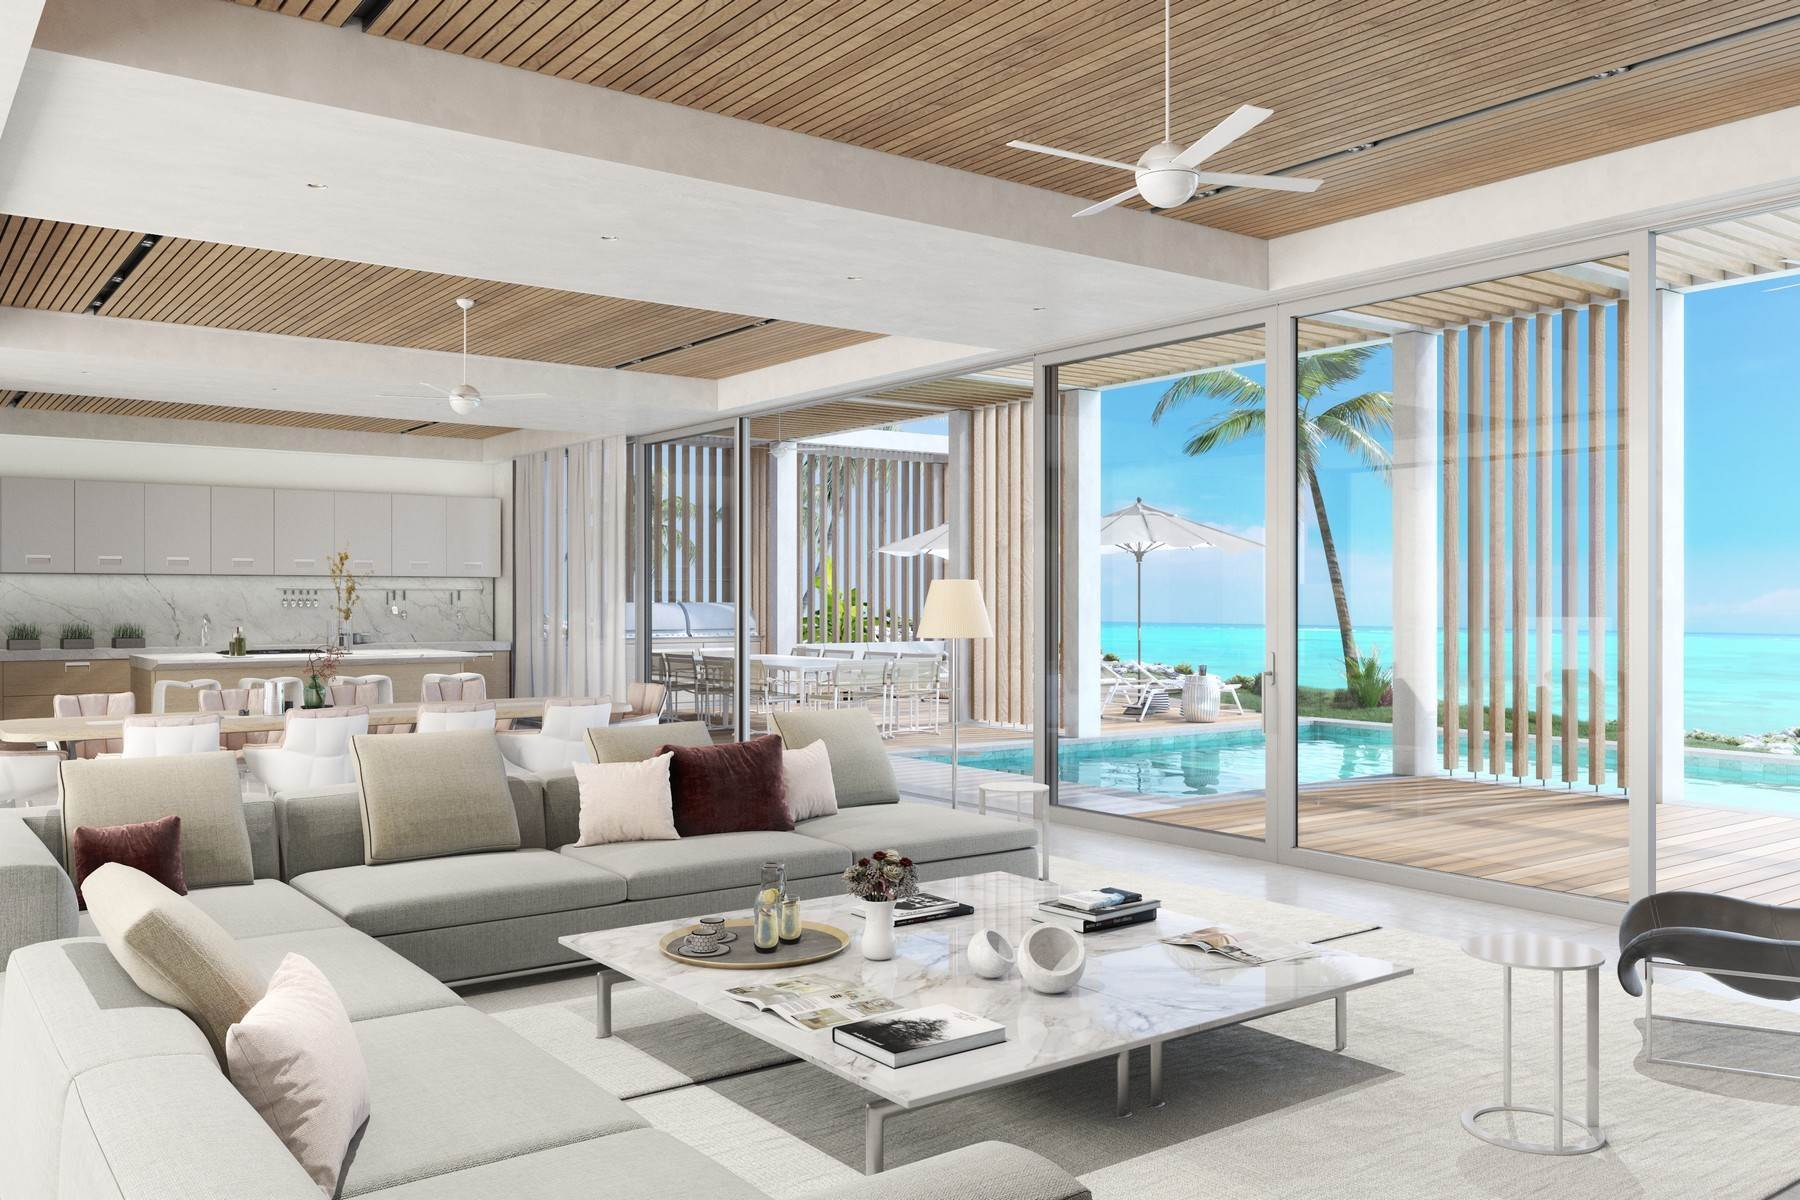 3. Single Family Homes for Sale at SOUTH BANK - THE OCEAN ESTATE I - BANKS VILLA 5 South Bank, Long Bay, Providenciales Turks And Caicos Islands